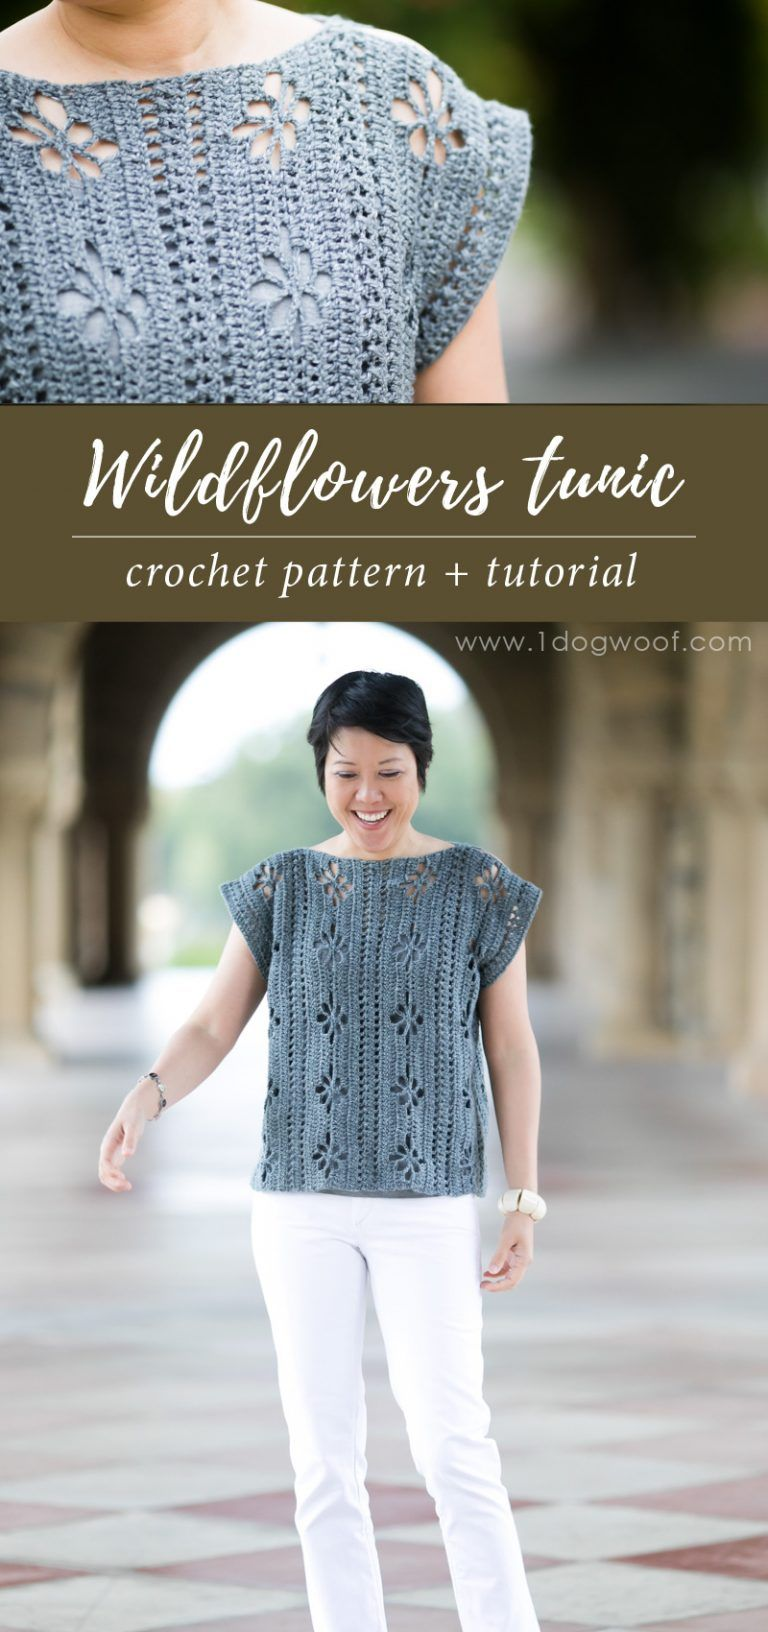 Wildflowers Tunic Crochet Pattern